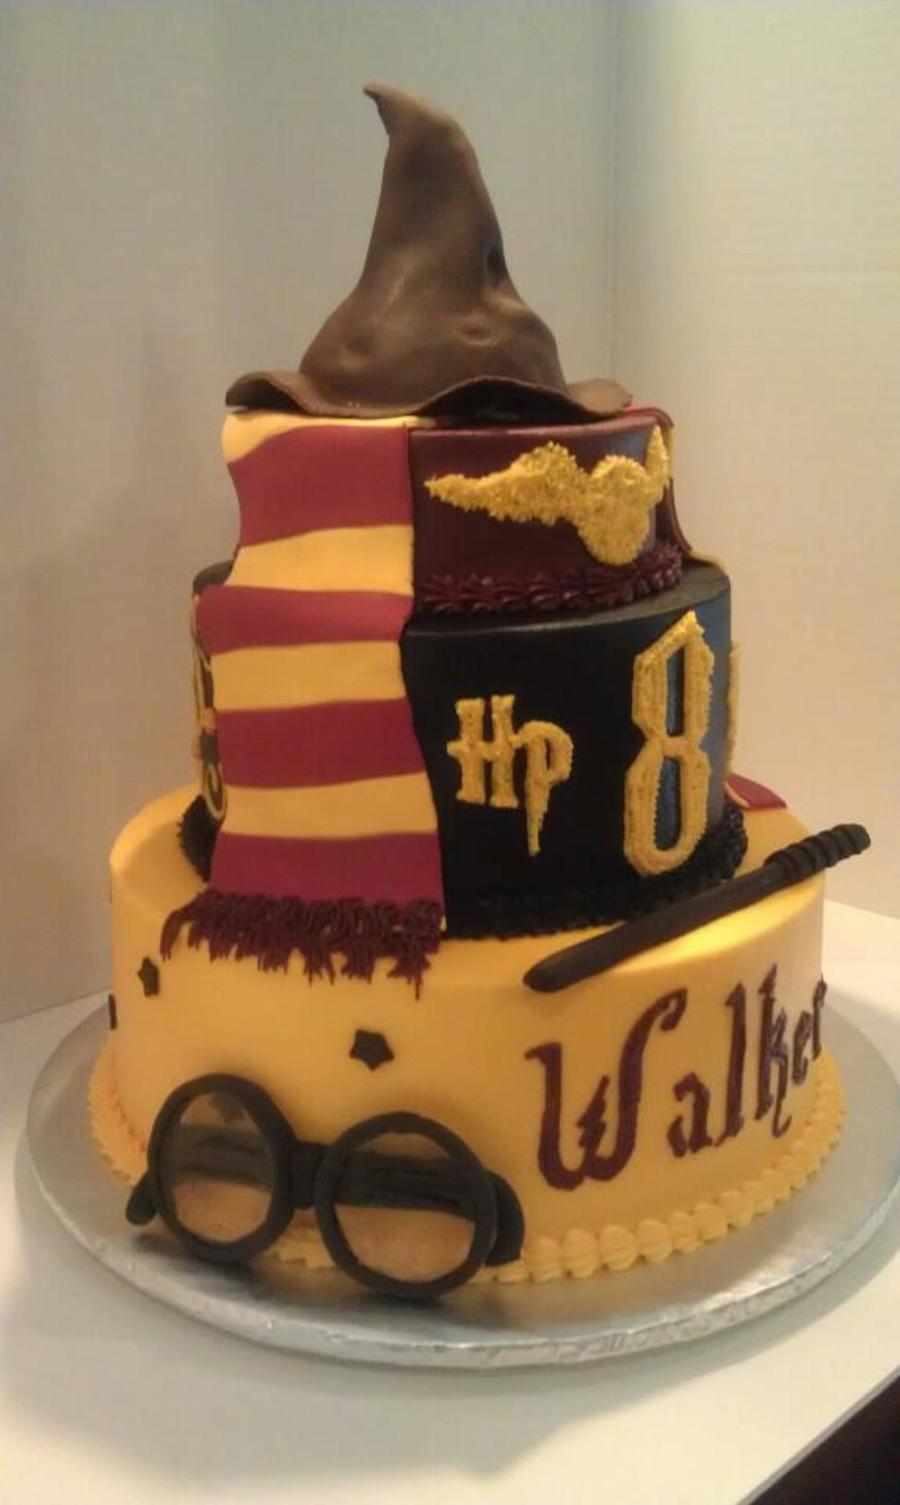 Harry Potter Cake In Buttercream With Fondant Trim Scarf Wand And Hat Glasses Are Made Of Dugar Glass Candy